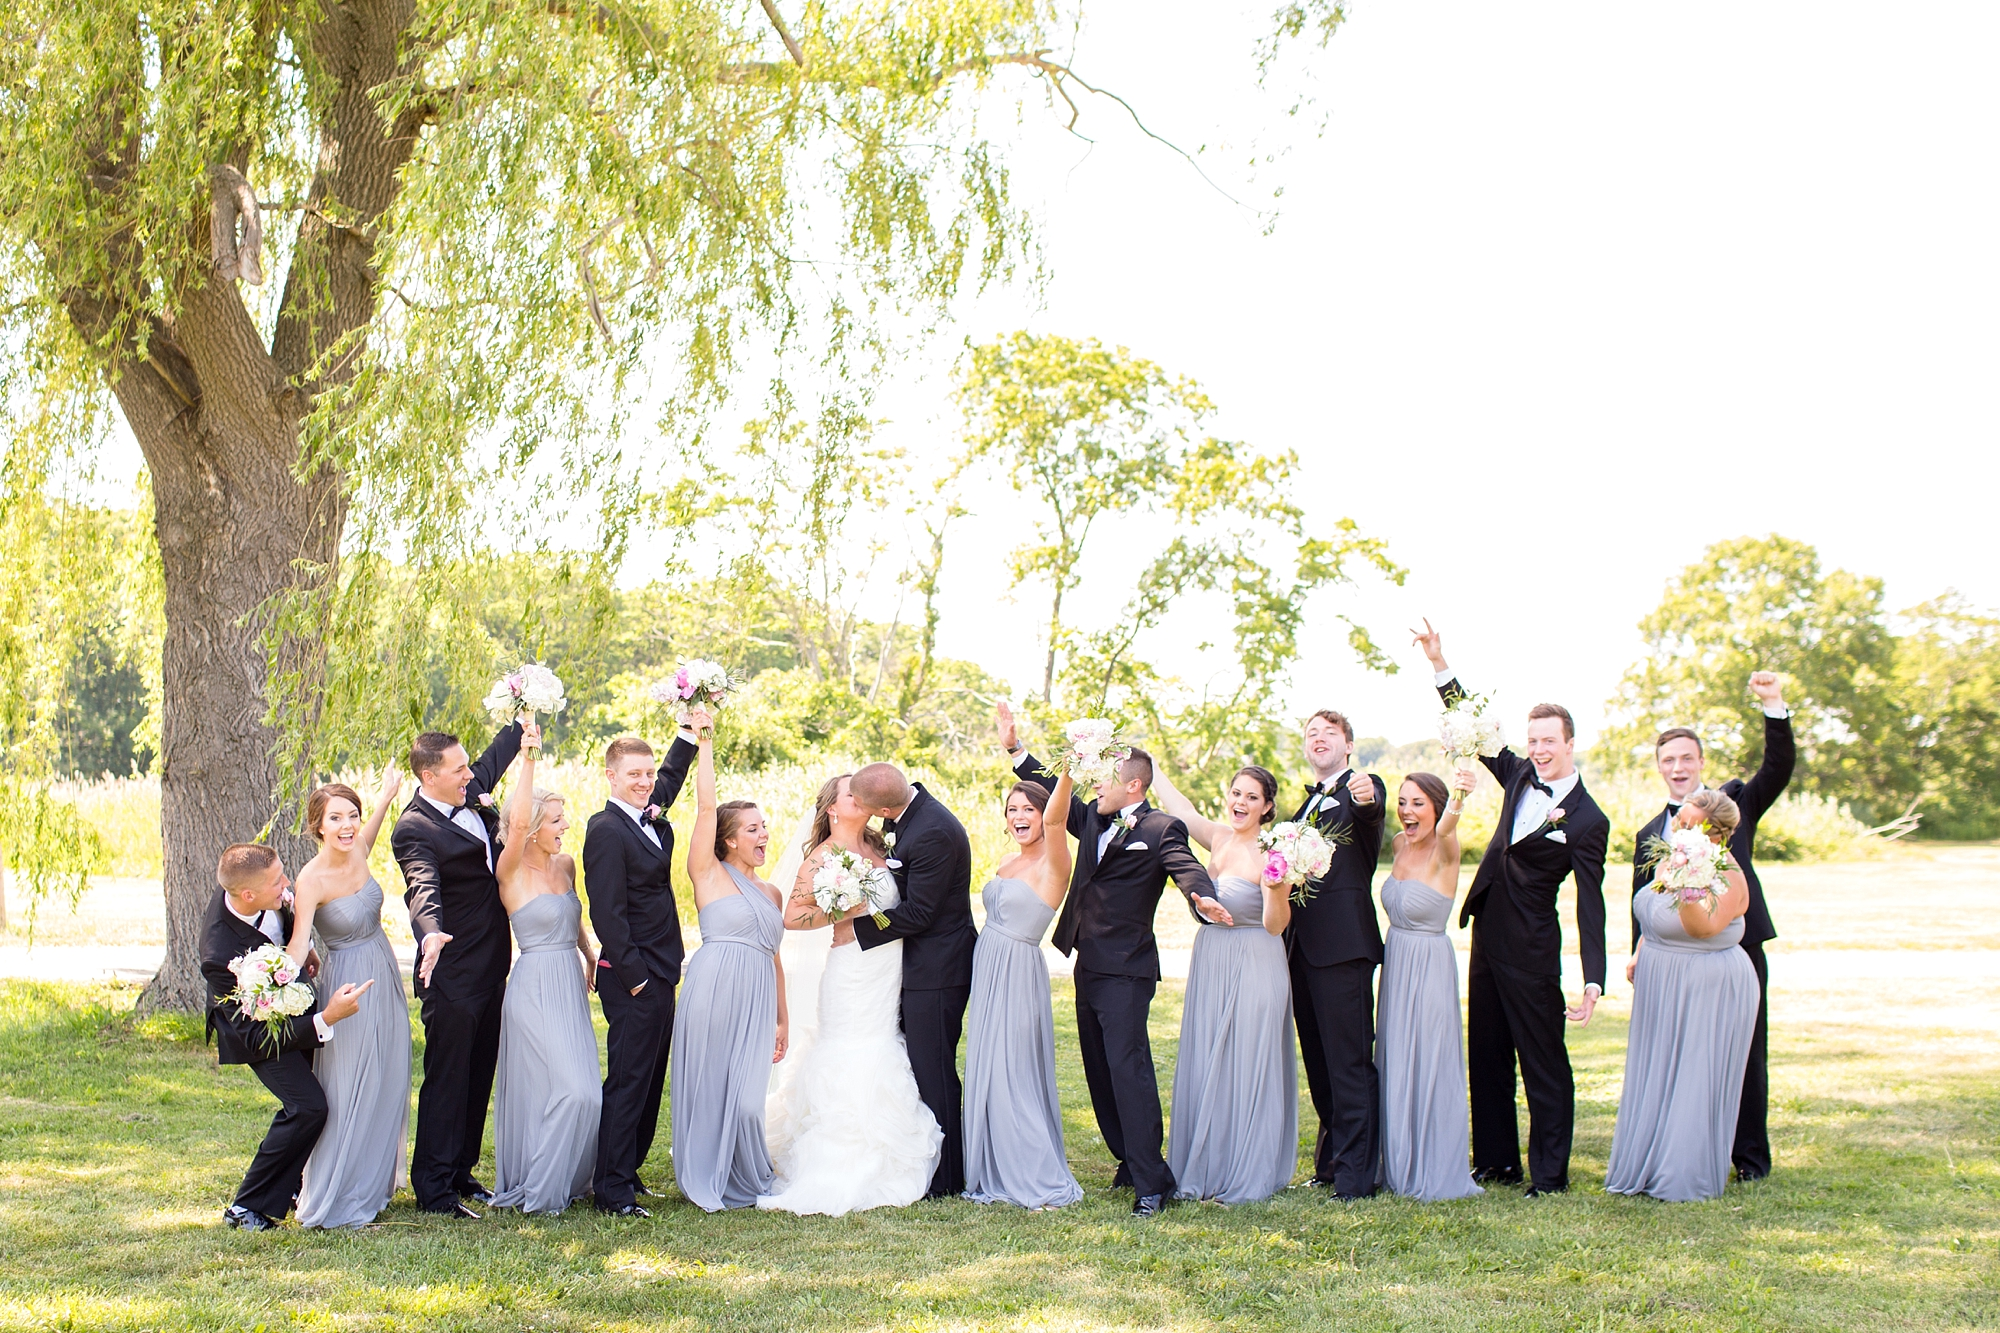 Peterson 4-Bridal Party-338_anna grace photography milford connecticut destination wedding photographer Great River Country Club photo.jpg